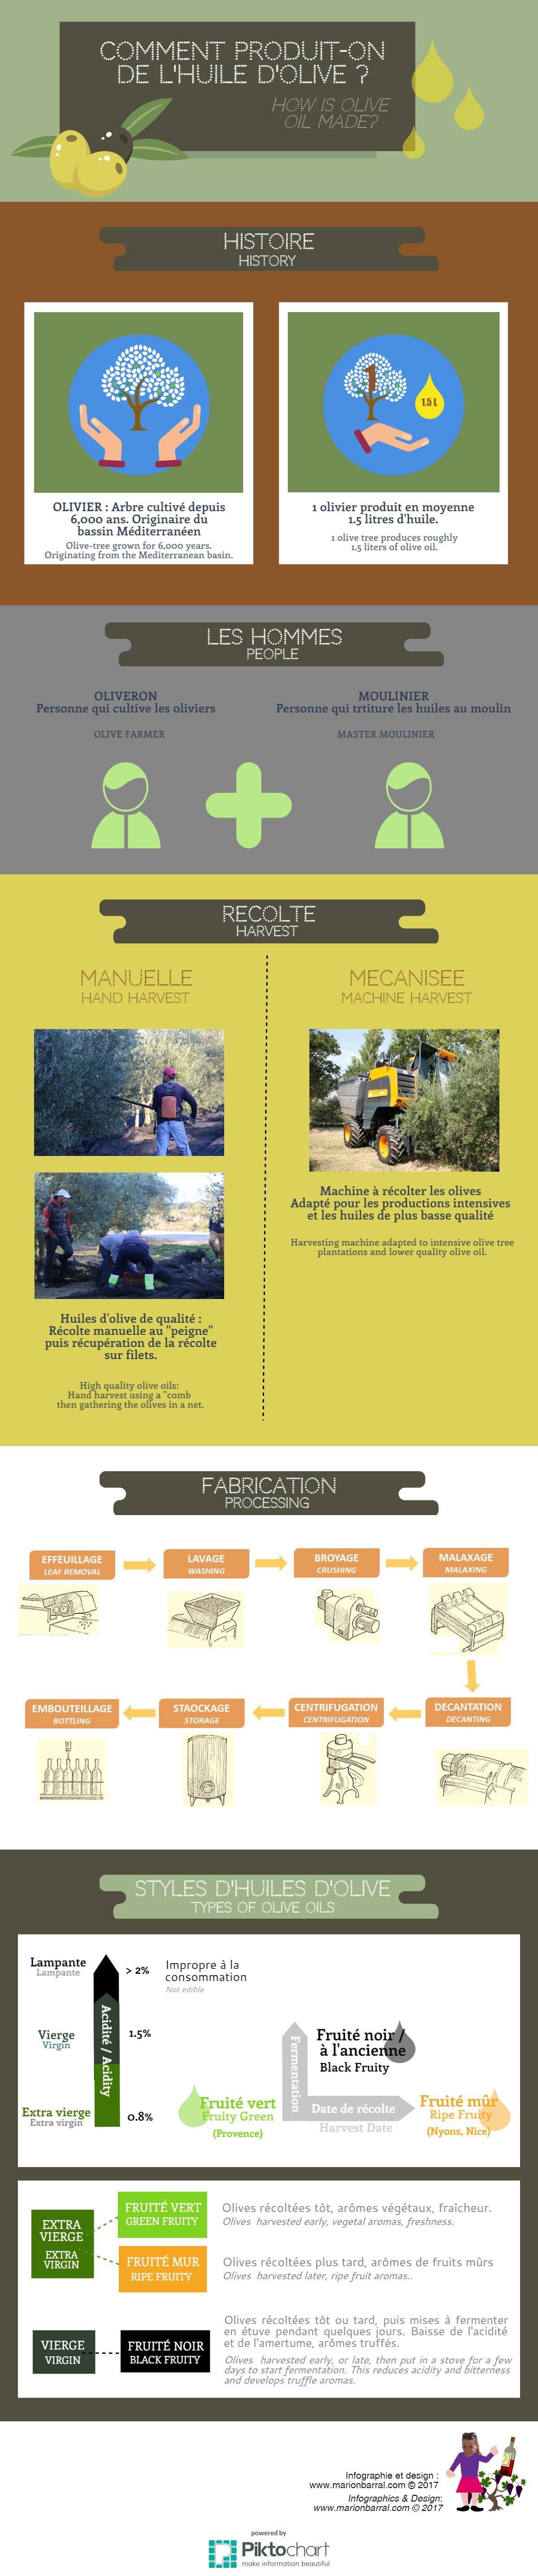 infographie fabrication huile olive making olive oil infographics